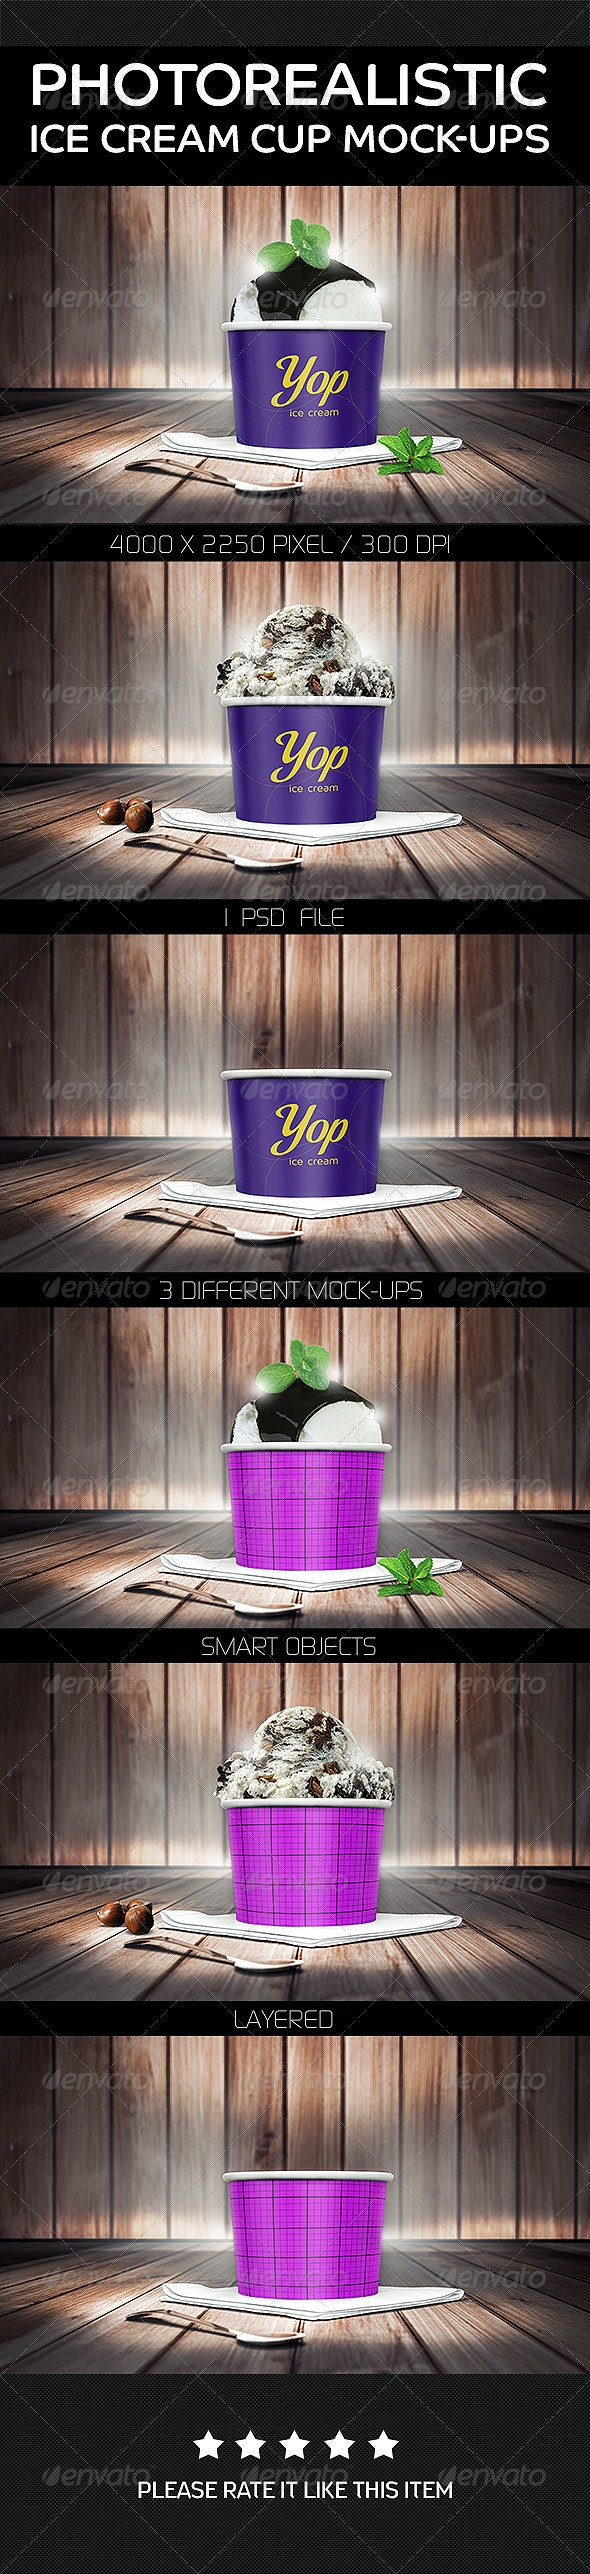 Photorealistic Ice Cream Cup Mock-Ups - Food and Drink Packaging